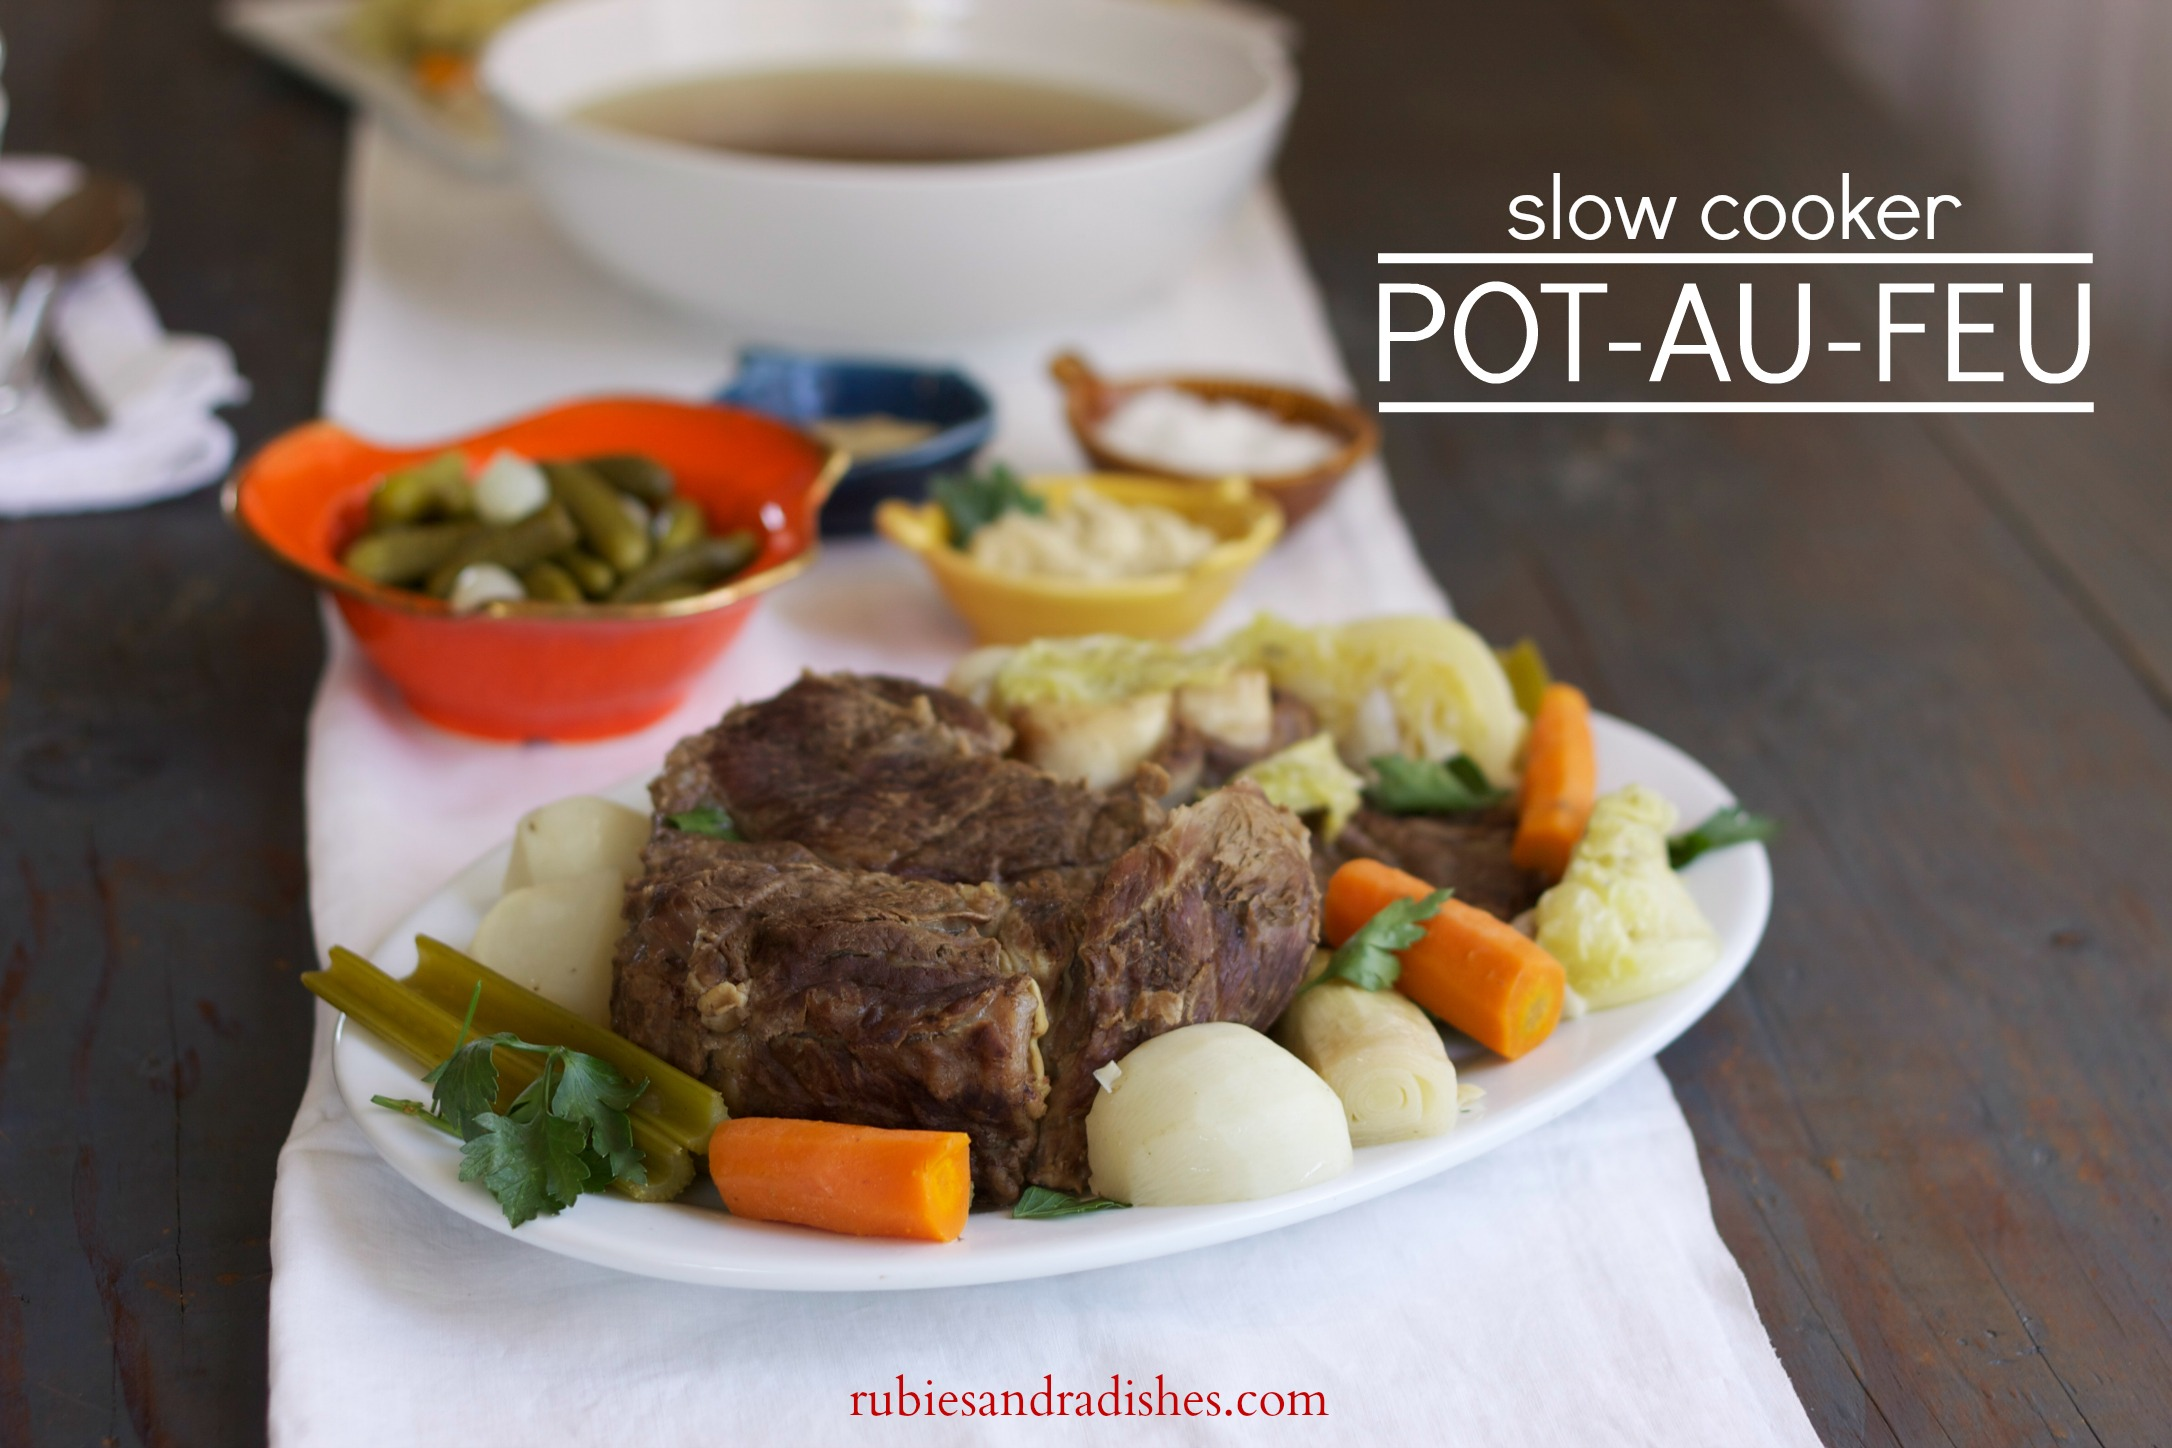 related recipes pot au feu recipe on food52 chicken pot au feu recipe ...